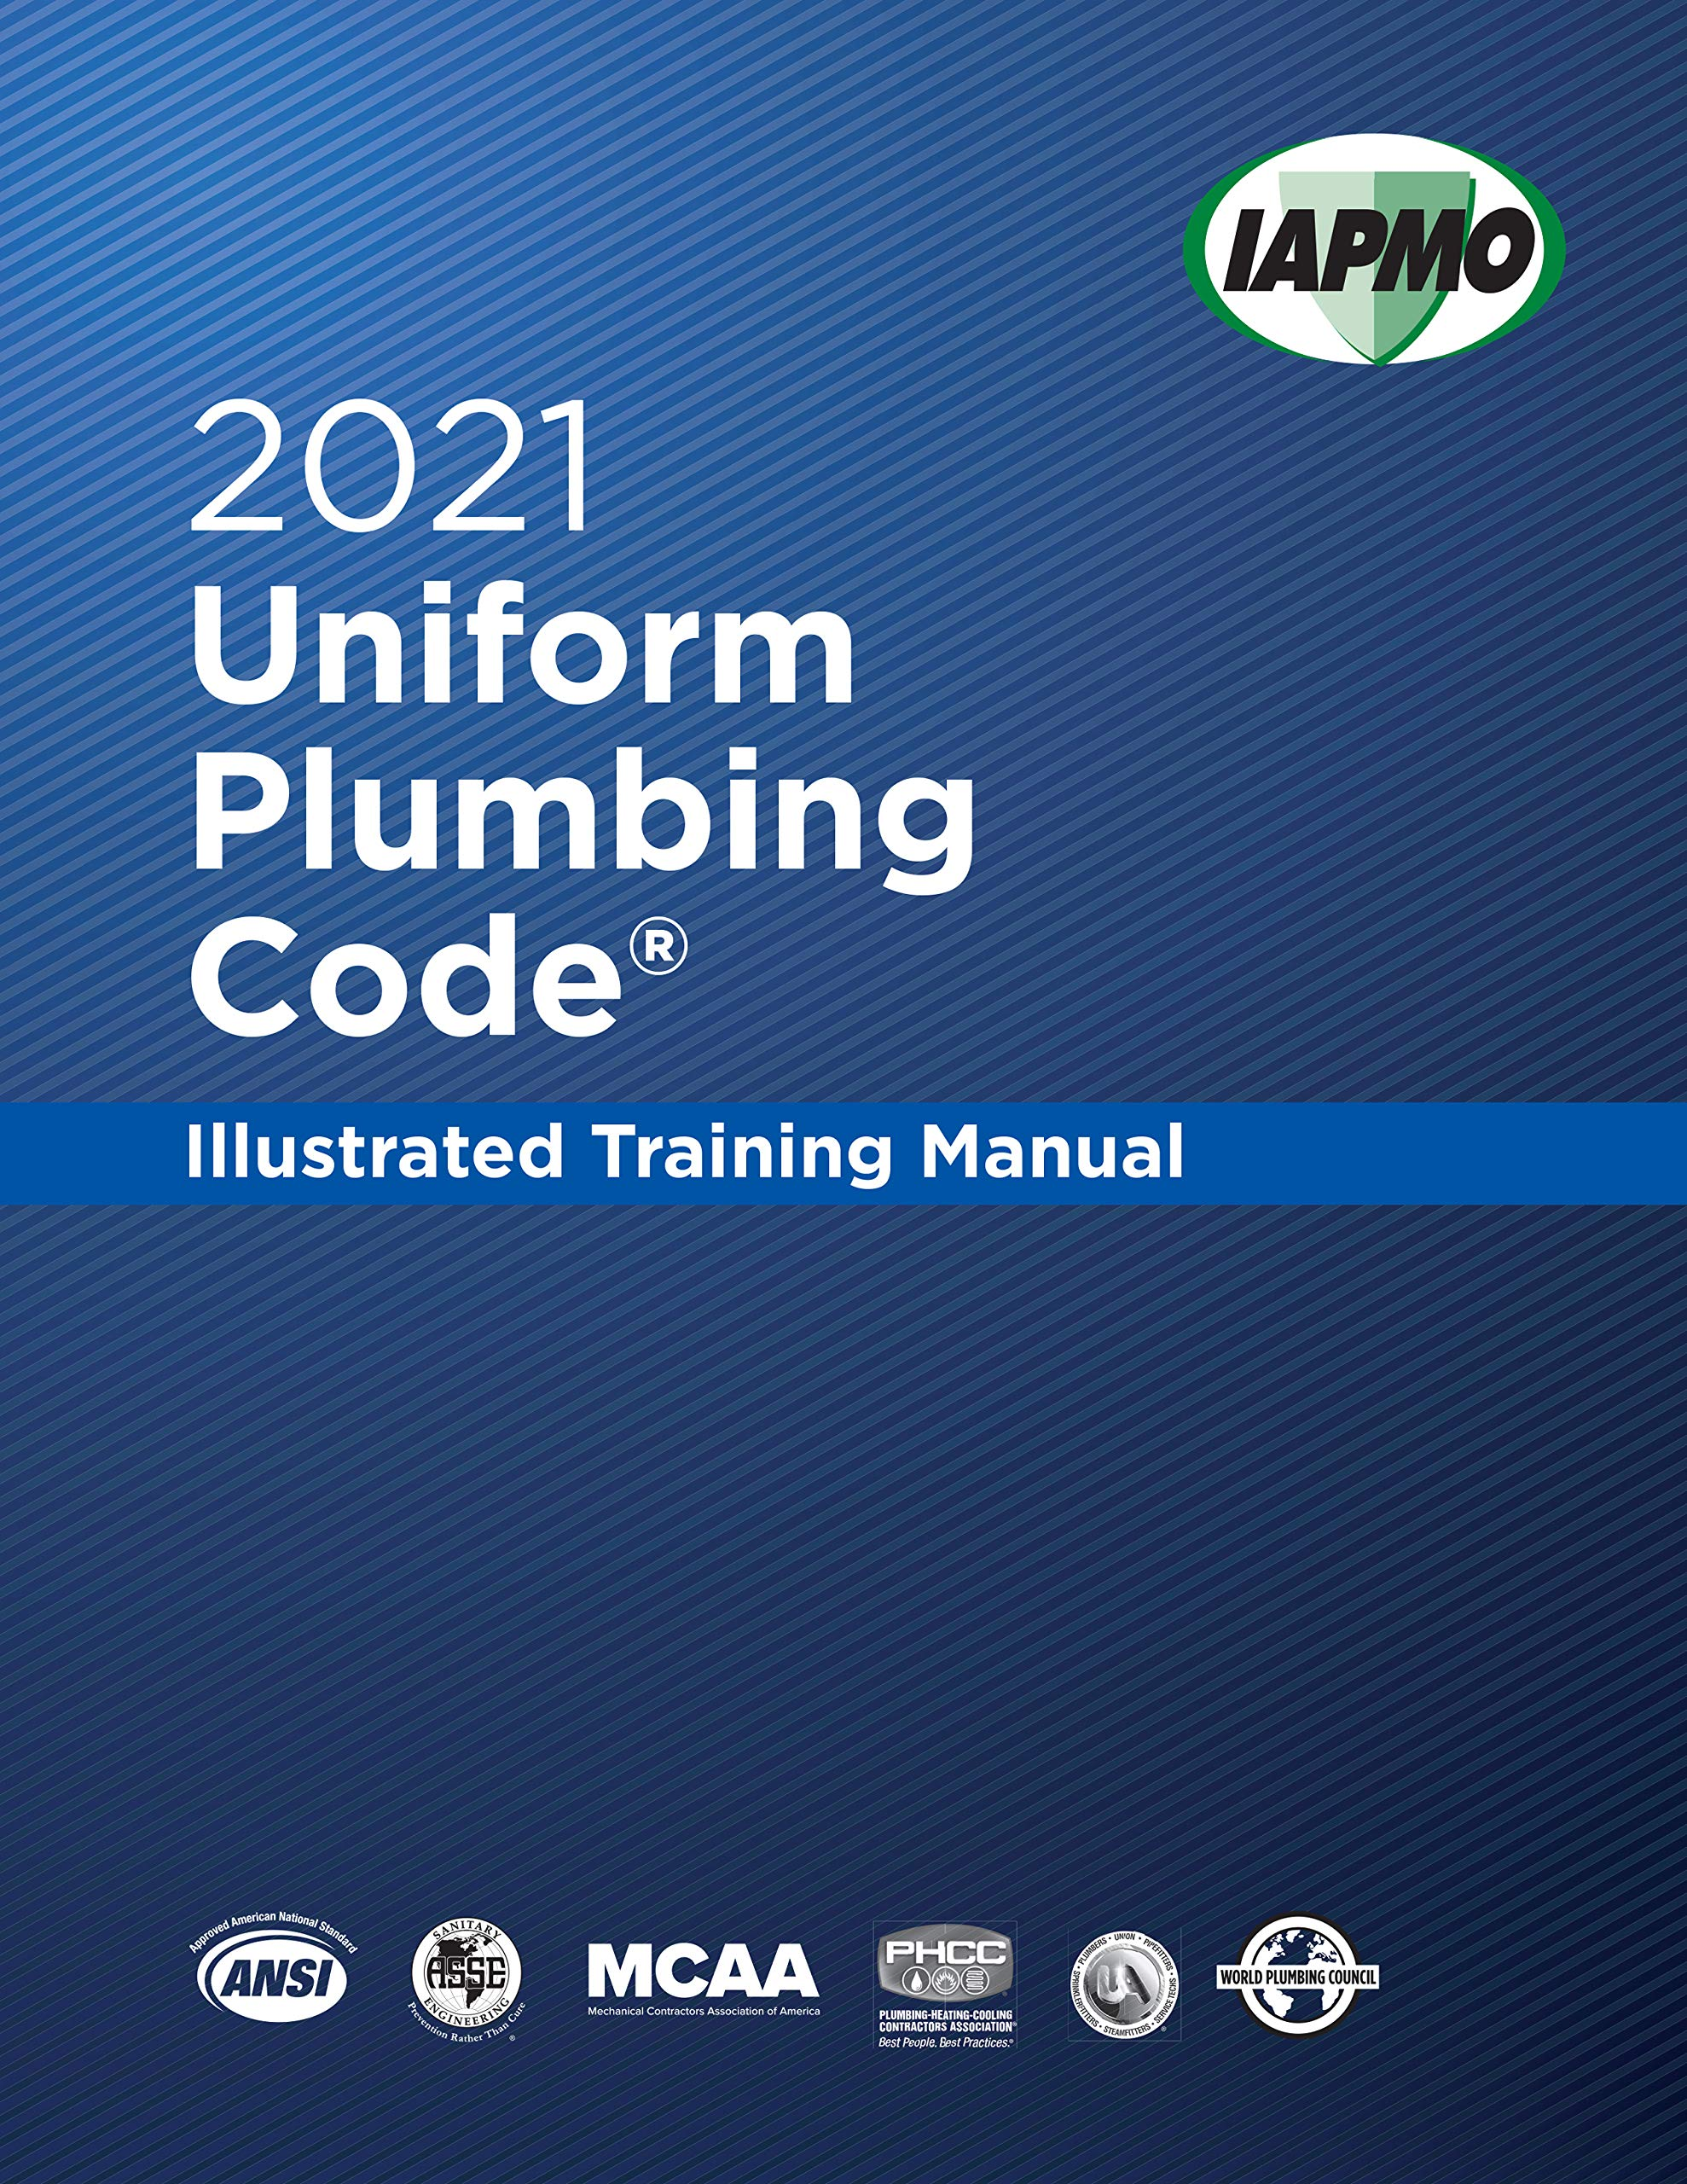 2021 Uniform Plumbing Code Illustrated Training Manual With Tabs The International Association Of Plumbing And Mechanical Officials 9781944366544 Amazon Com Books